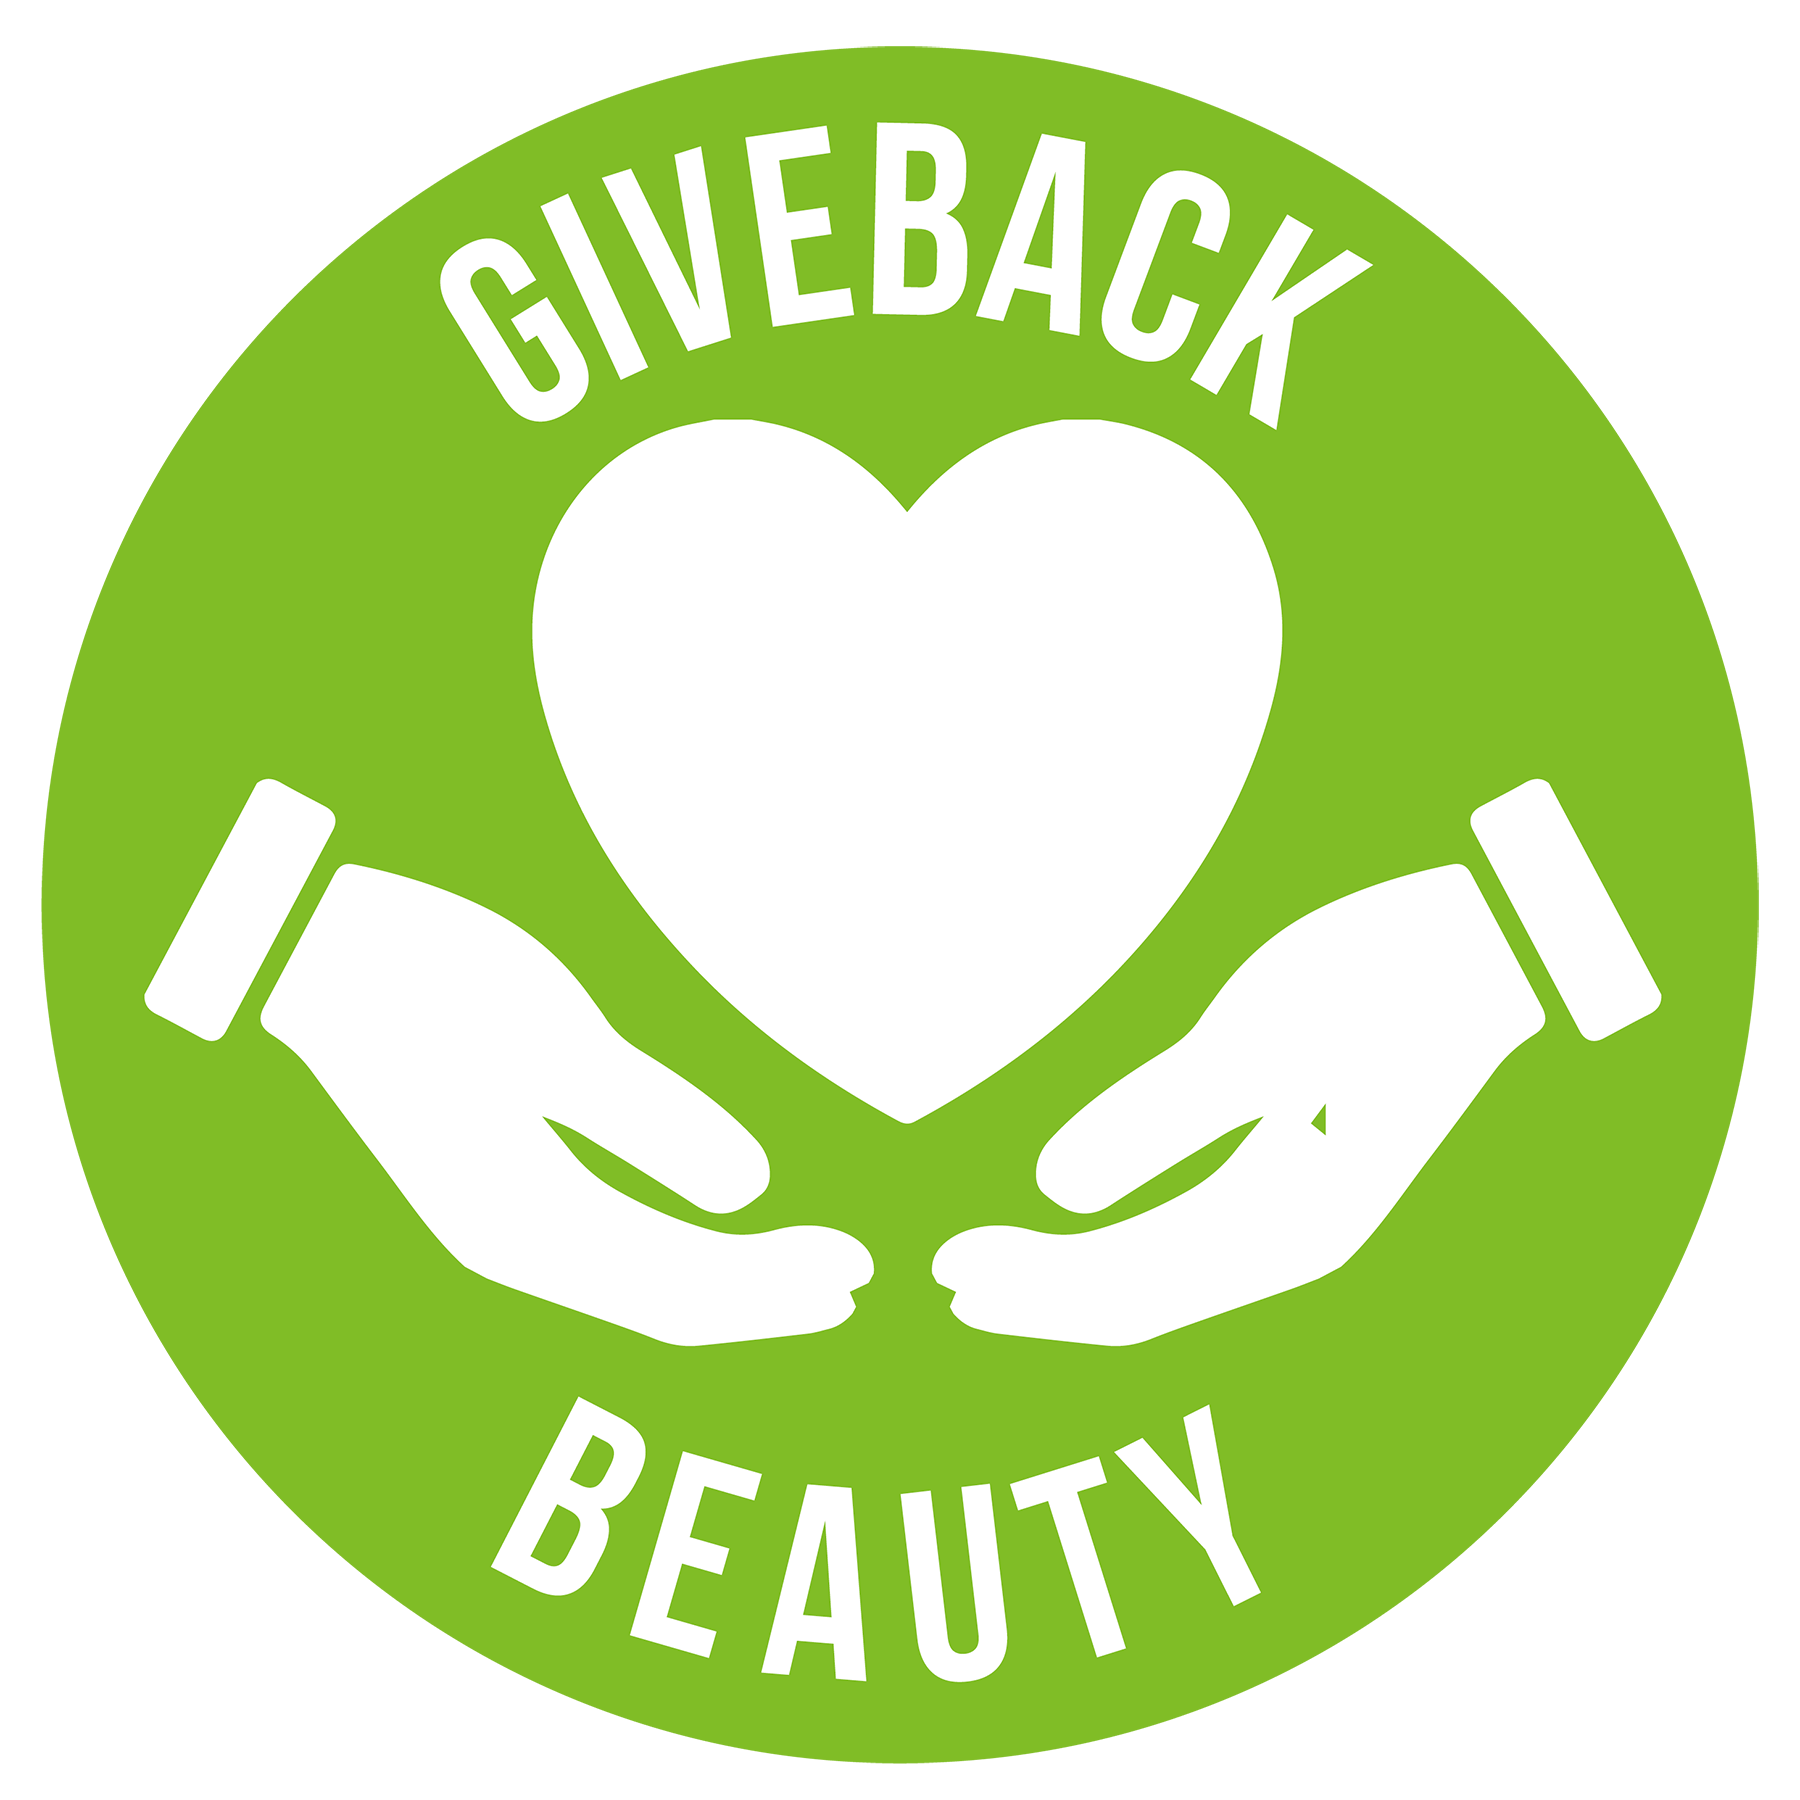 Giveback beauty logo